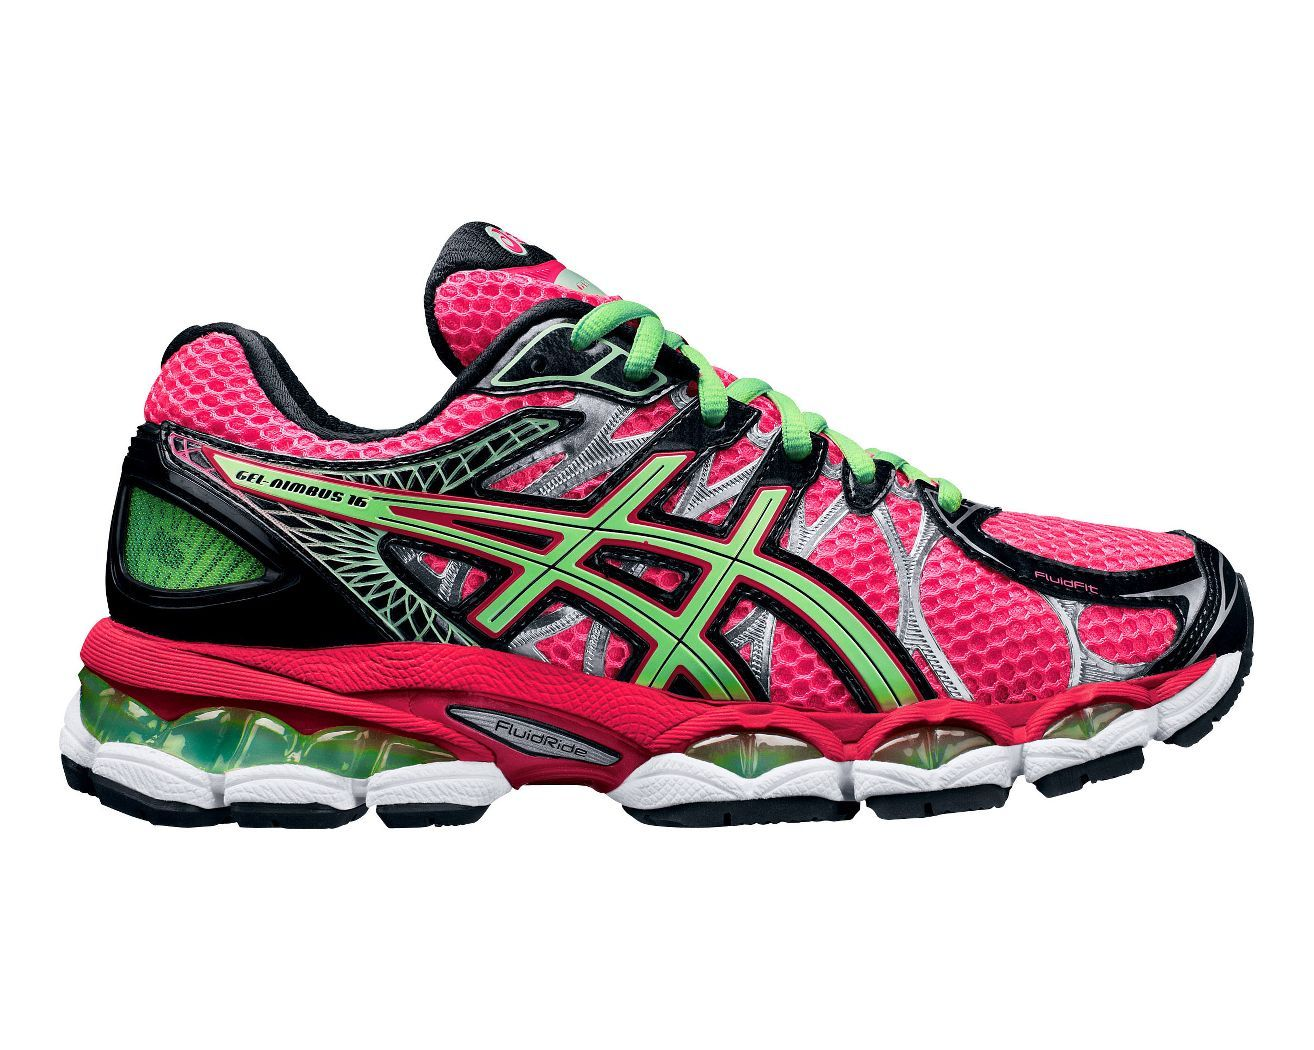 low priced e144f 184ec Womens ASICS GEL-Nimbus 16 Running Shoe at Road Runner Sports